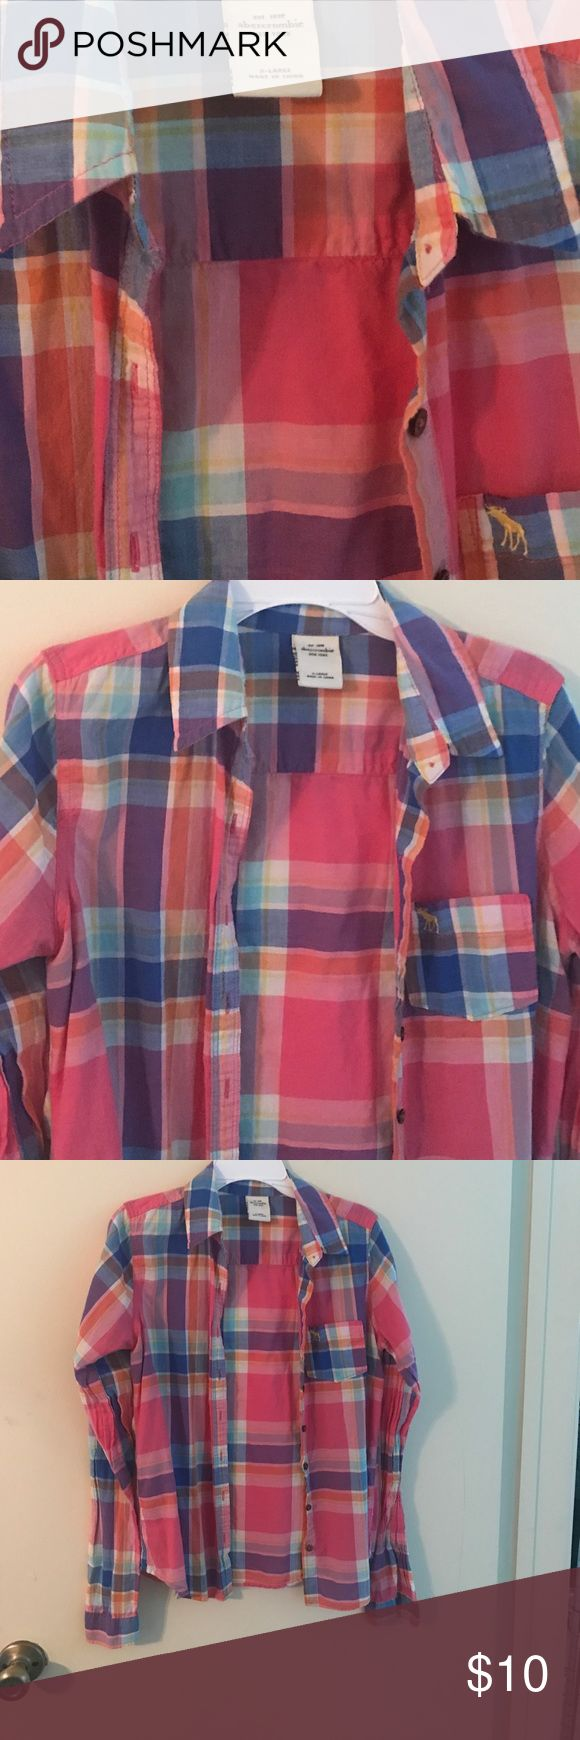 Abercrombie girls Abercrombie preteen girls shirts Abercrombie & Fitch Tops Button Down Shirts